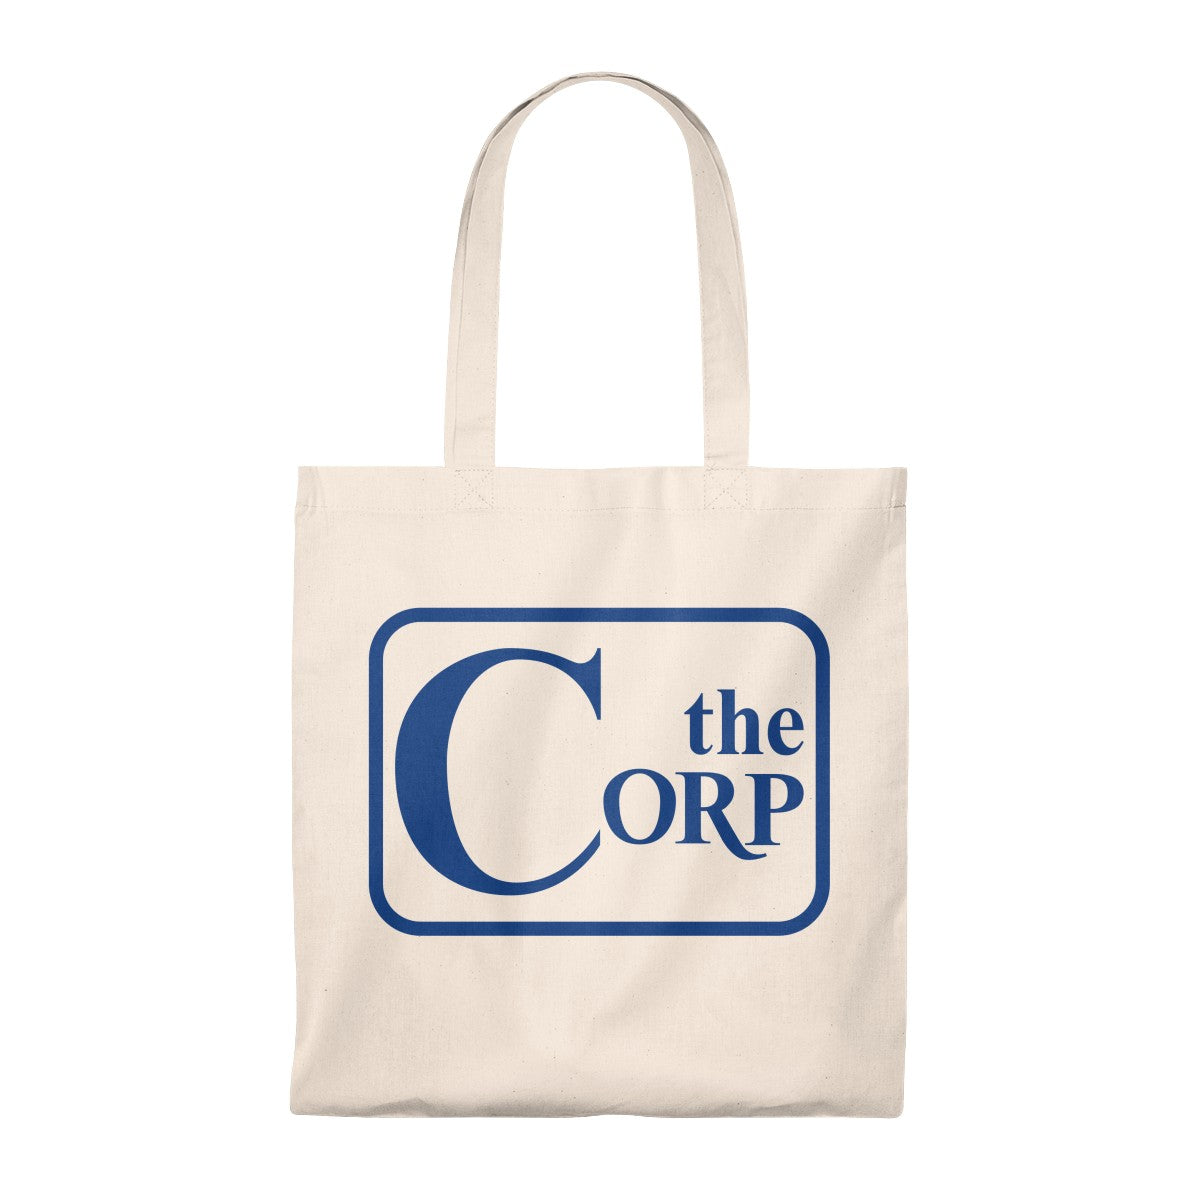 The Corp Vintage Tote Bag